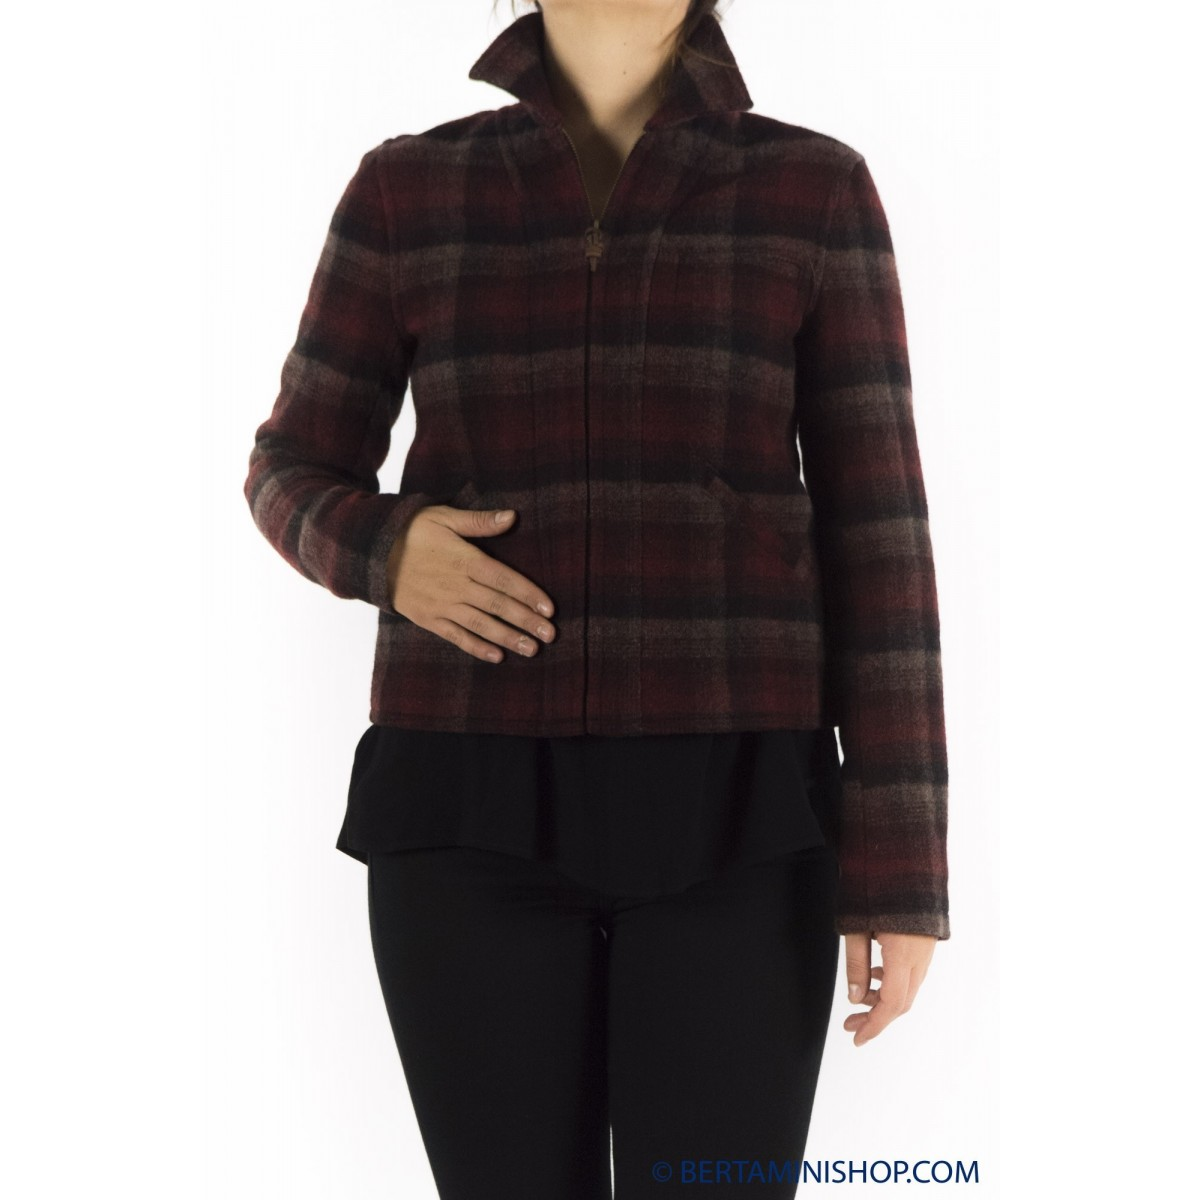 Coat Ralph Lauren Woman - V30Id429Wd303